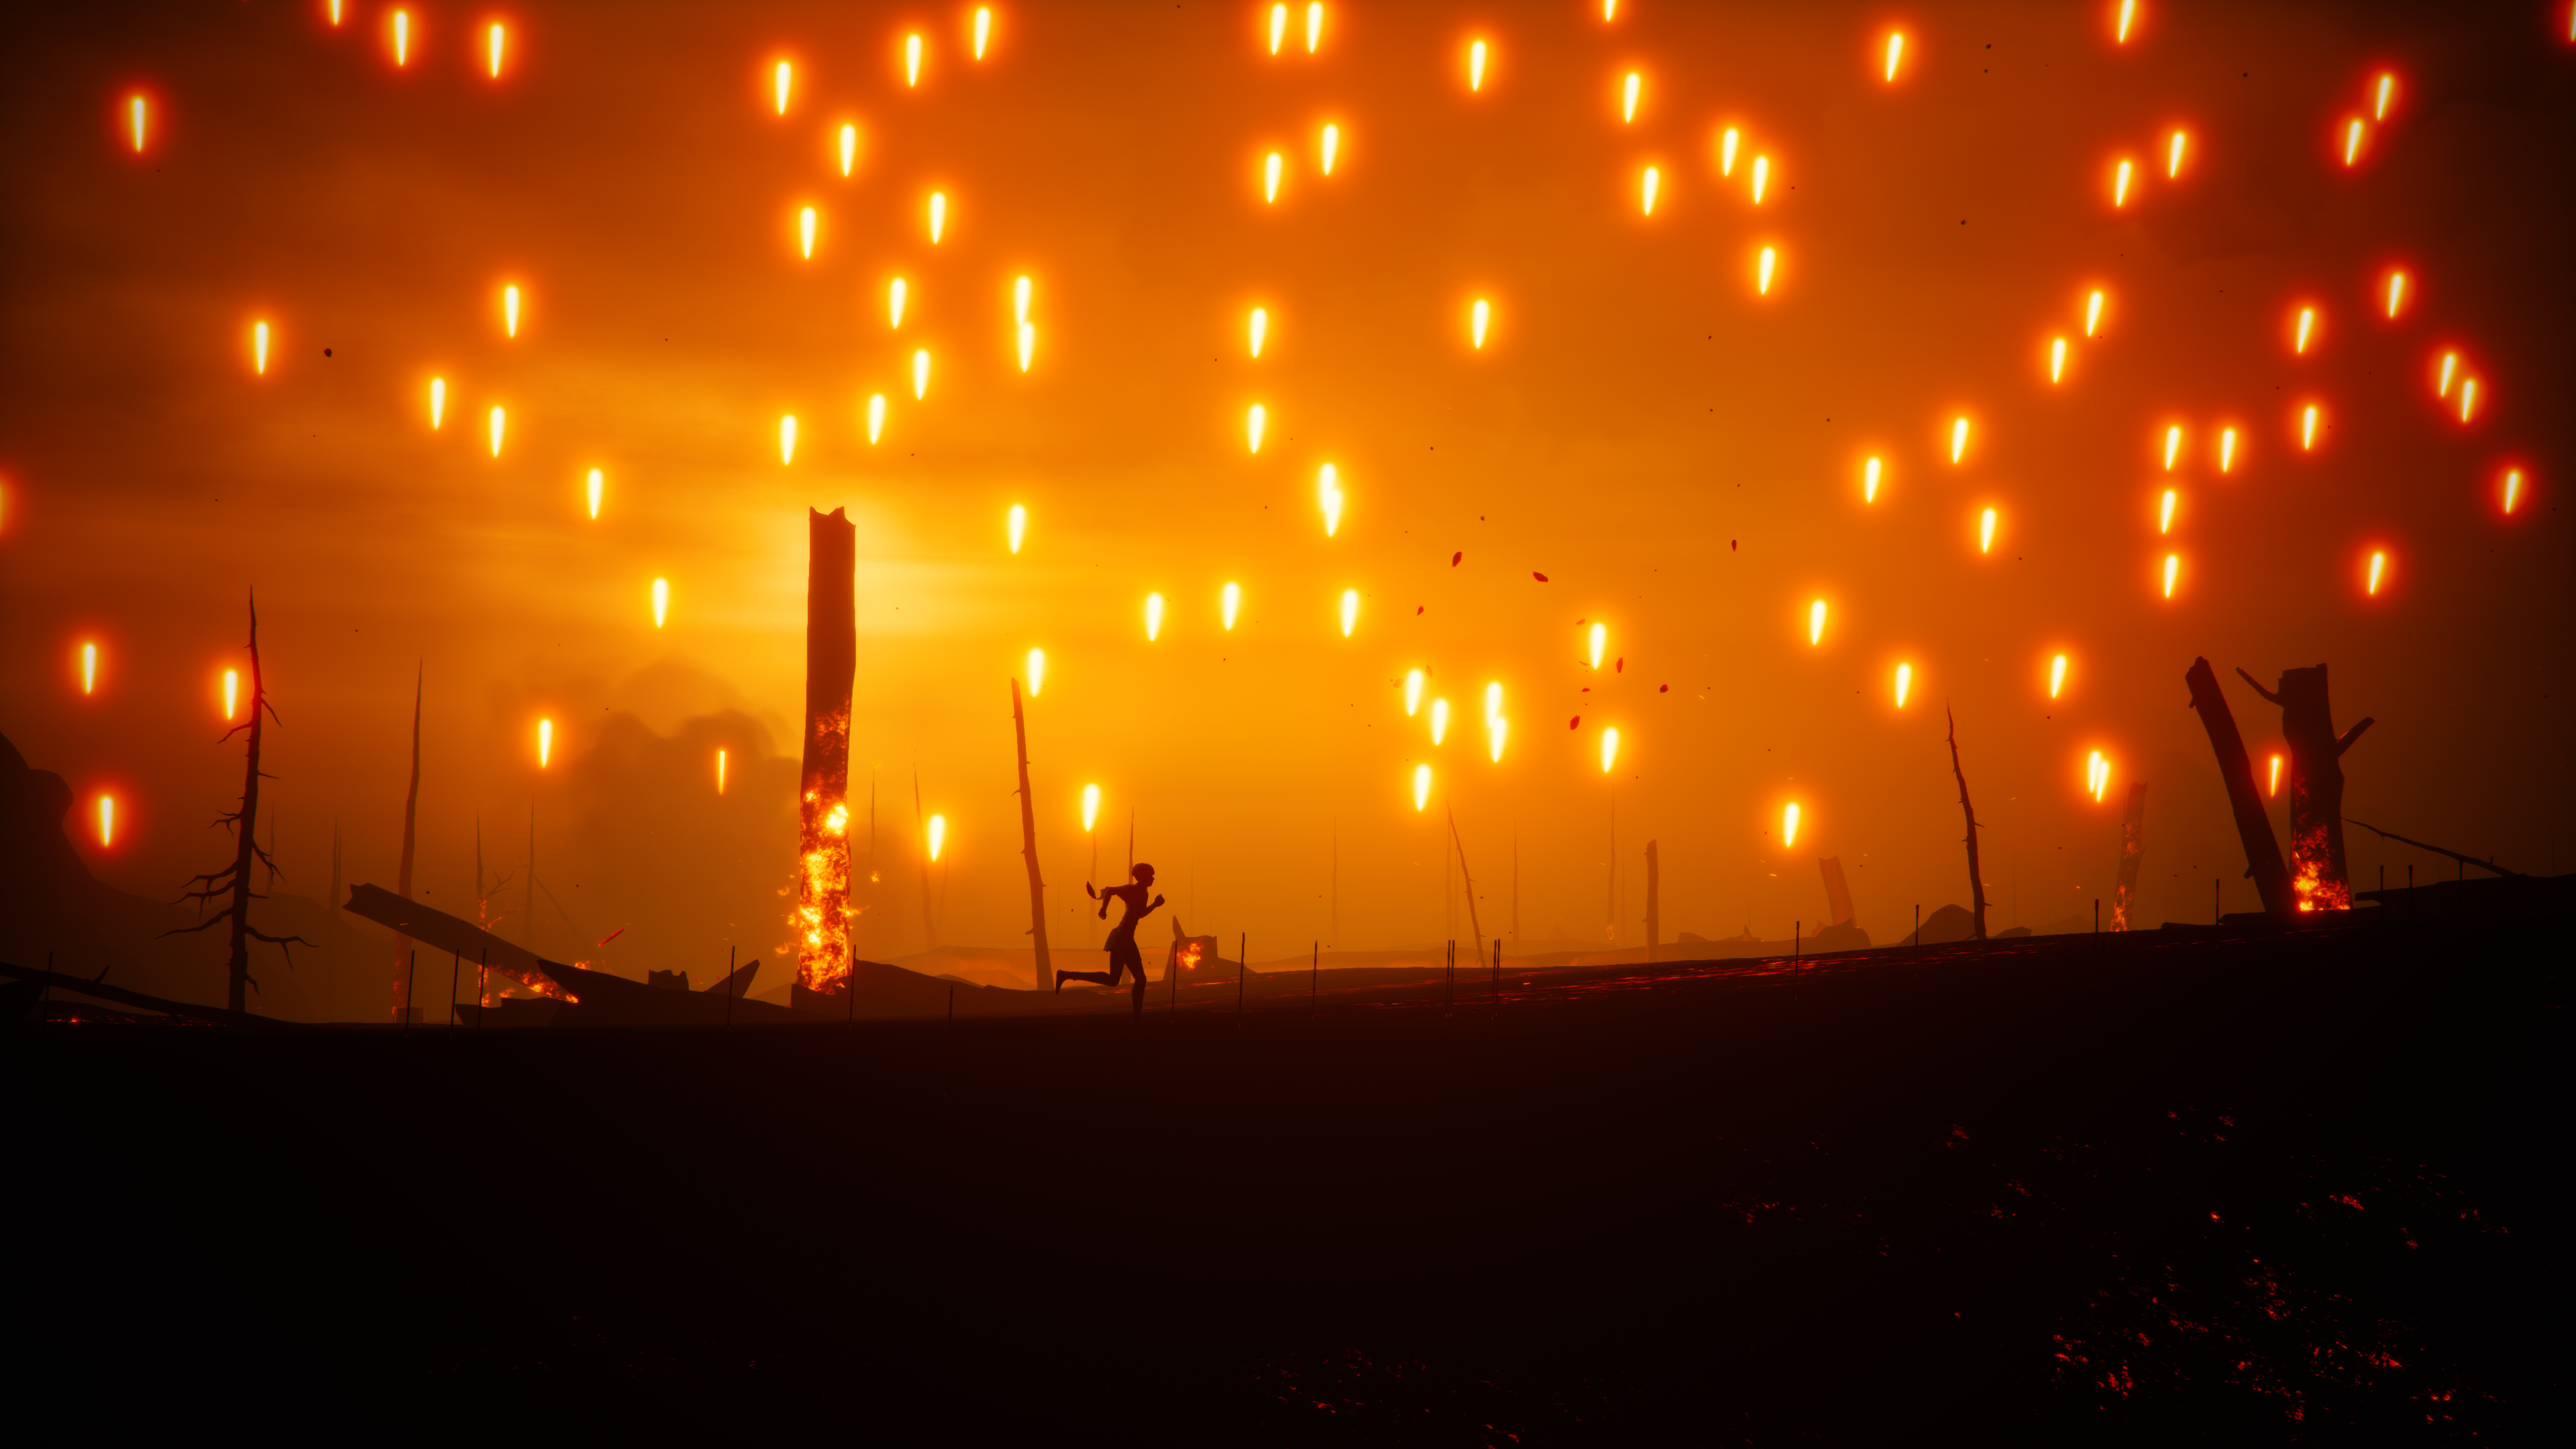 a young woman runs through a burning field, with flames falling from the sky, in Stela